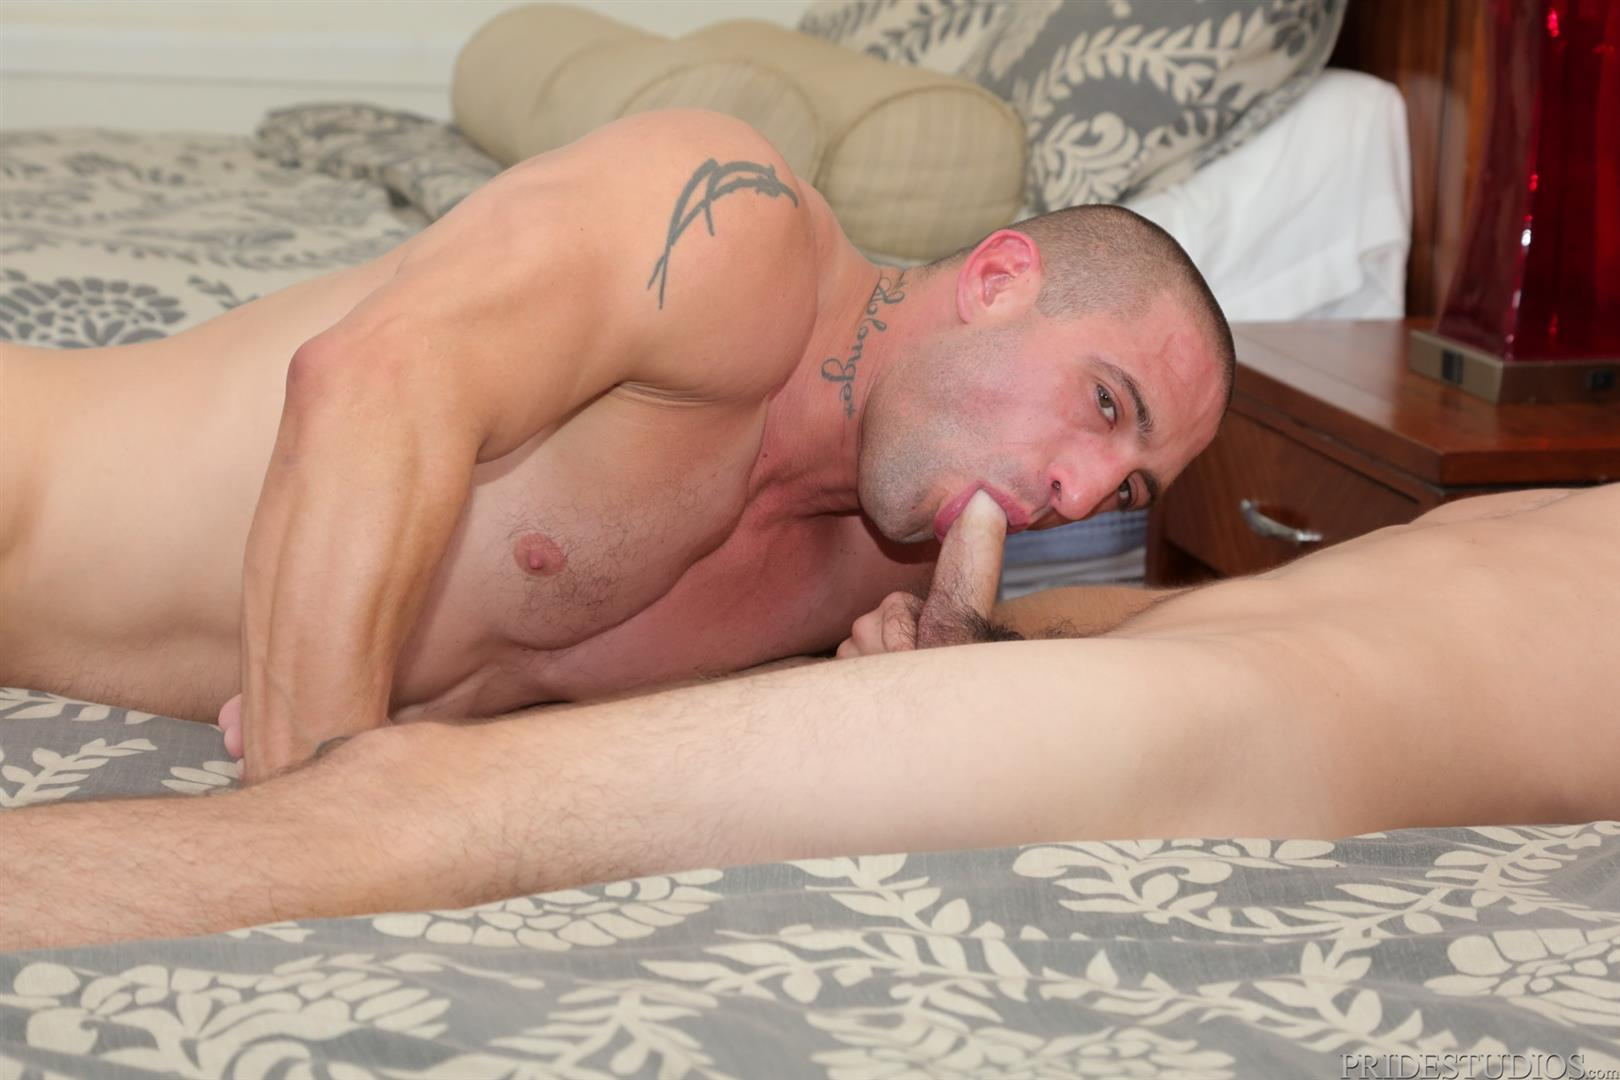 Dylan-Lucas-Timothy-Rivers-and-Ceasar-Camaro-Younger-Guy-Fucking-A-Muscle-Daddy-09 Muscular Pool Daddy Takes A Younger Cock Up The Ass At A Palm Springs Gay Resort